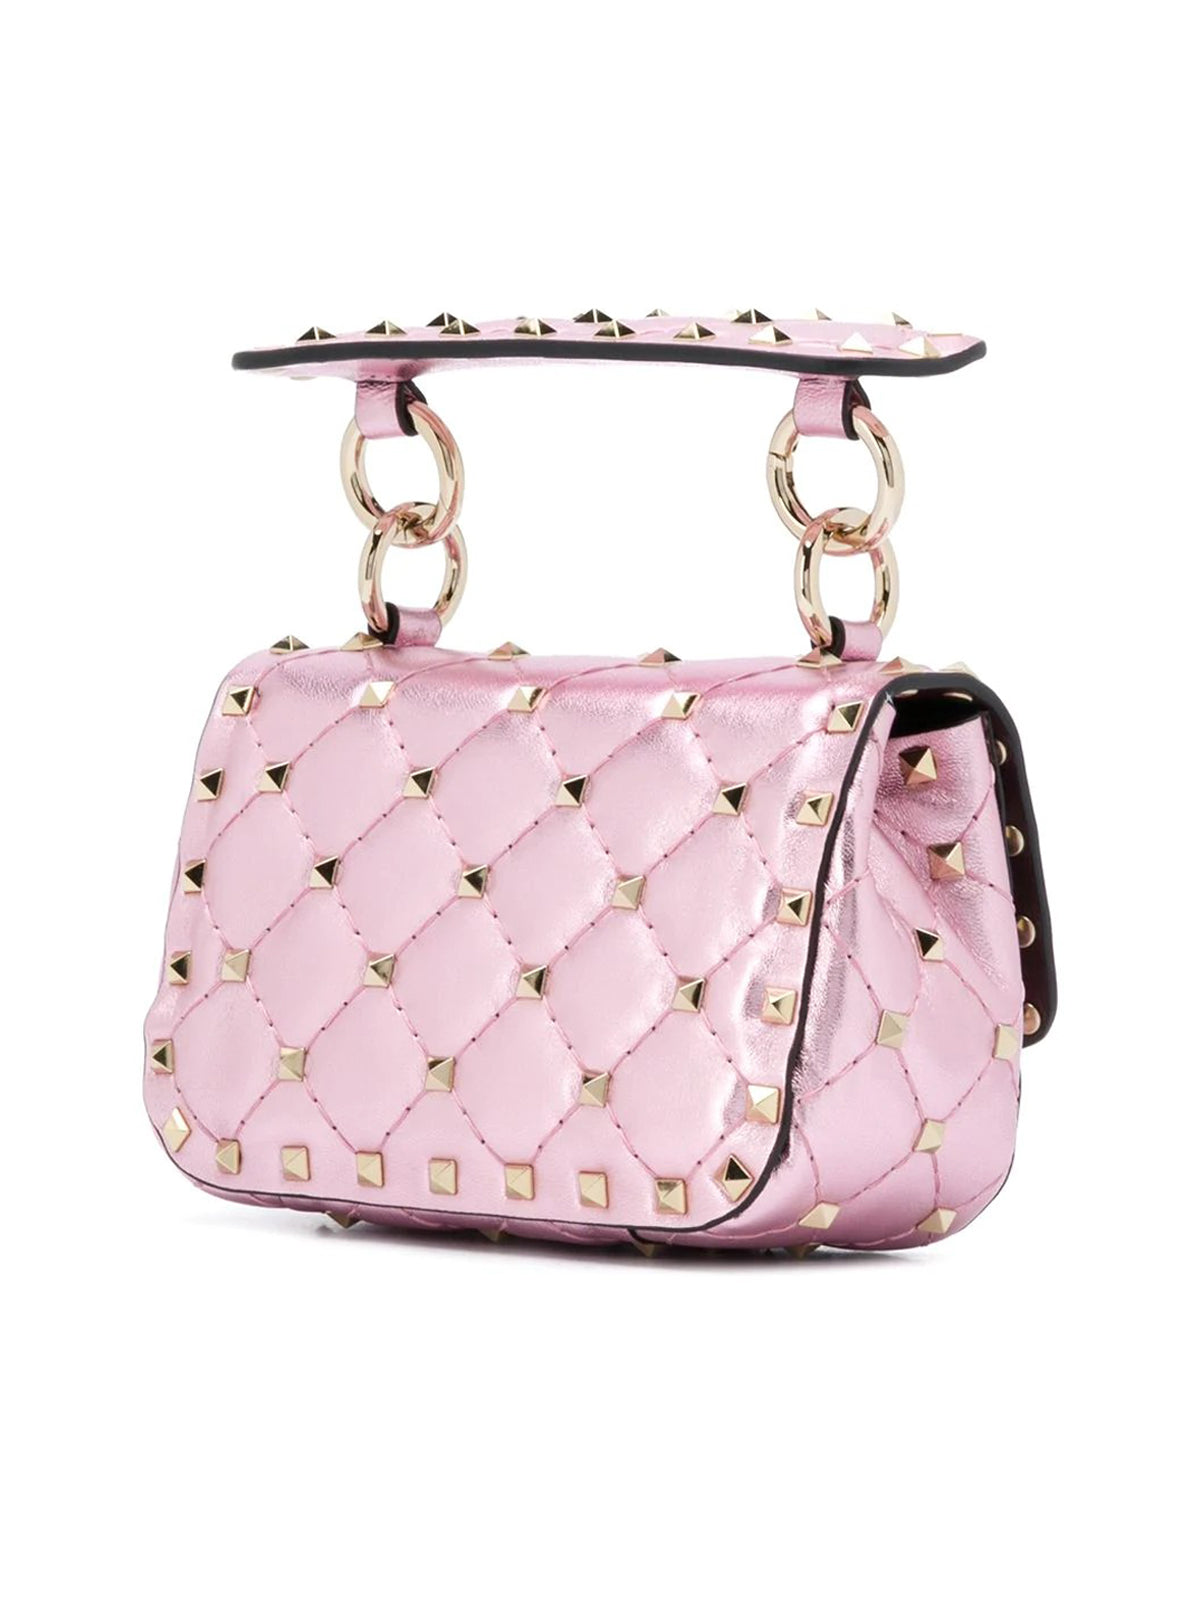 Rockstud Spike mini bag